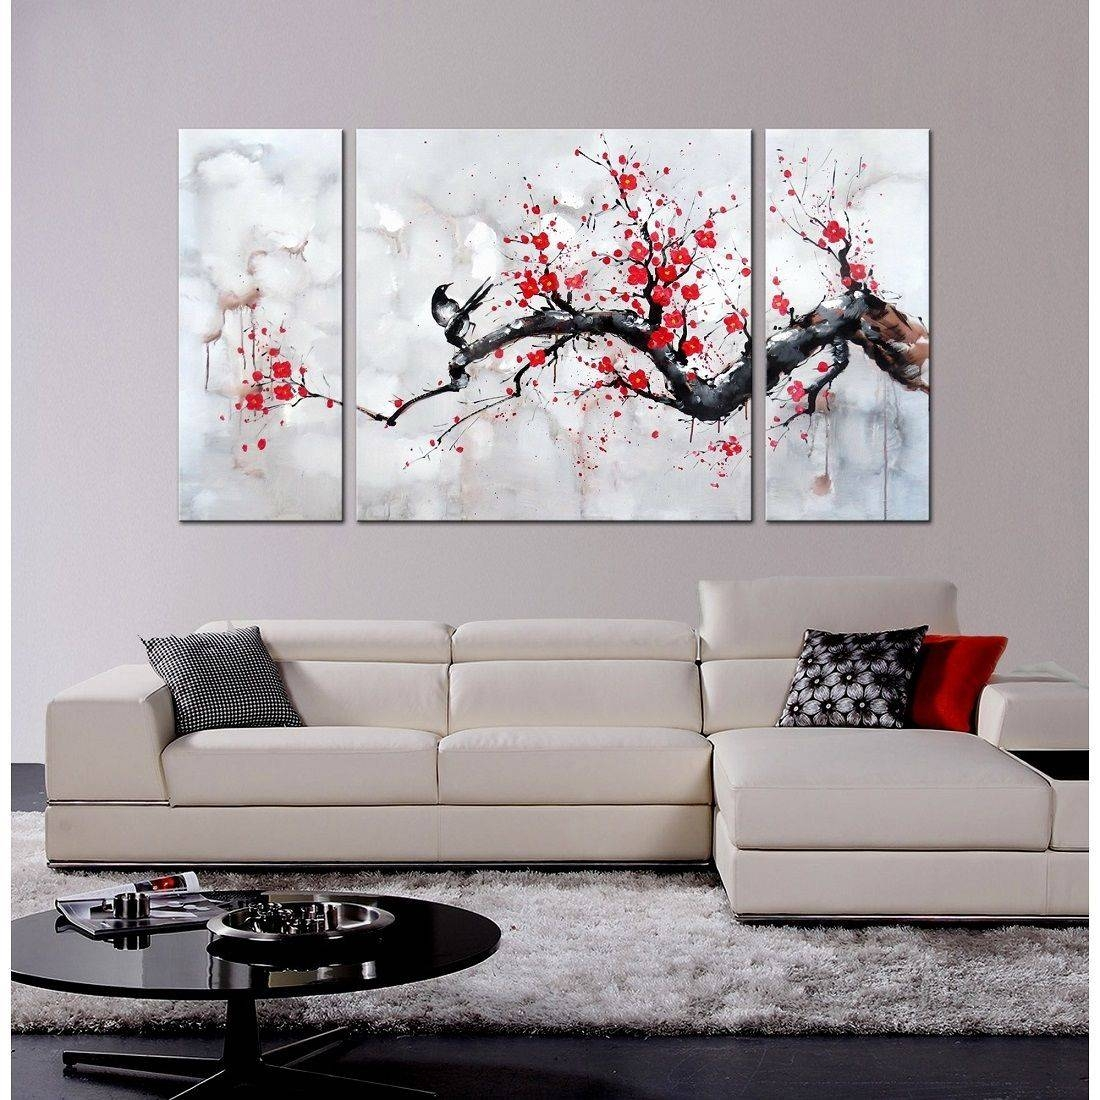 Japanese Syle Wall Art Red Plum Blossom Gallery Wrapped Canvas 3 Regarding Latest Japanese Wall Art Panels (Gallery 5 of 25)